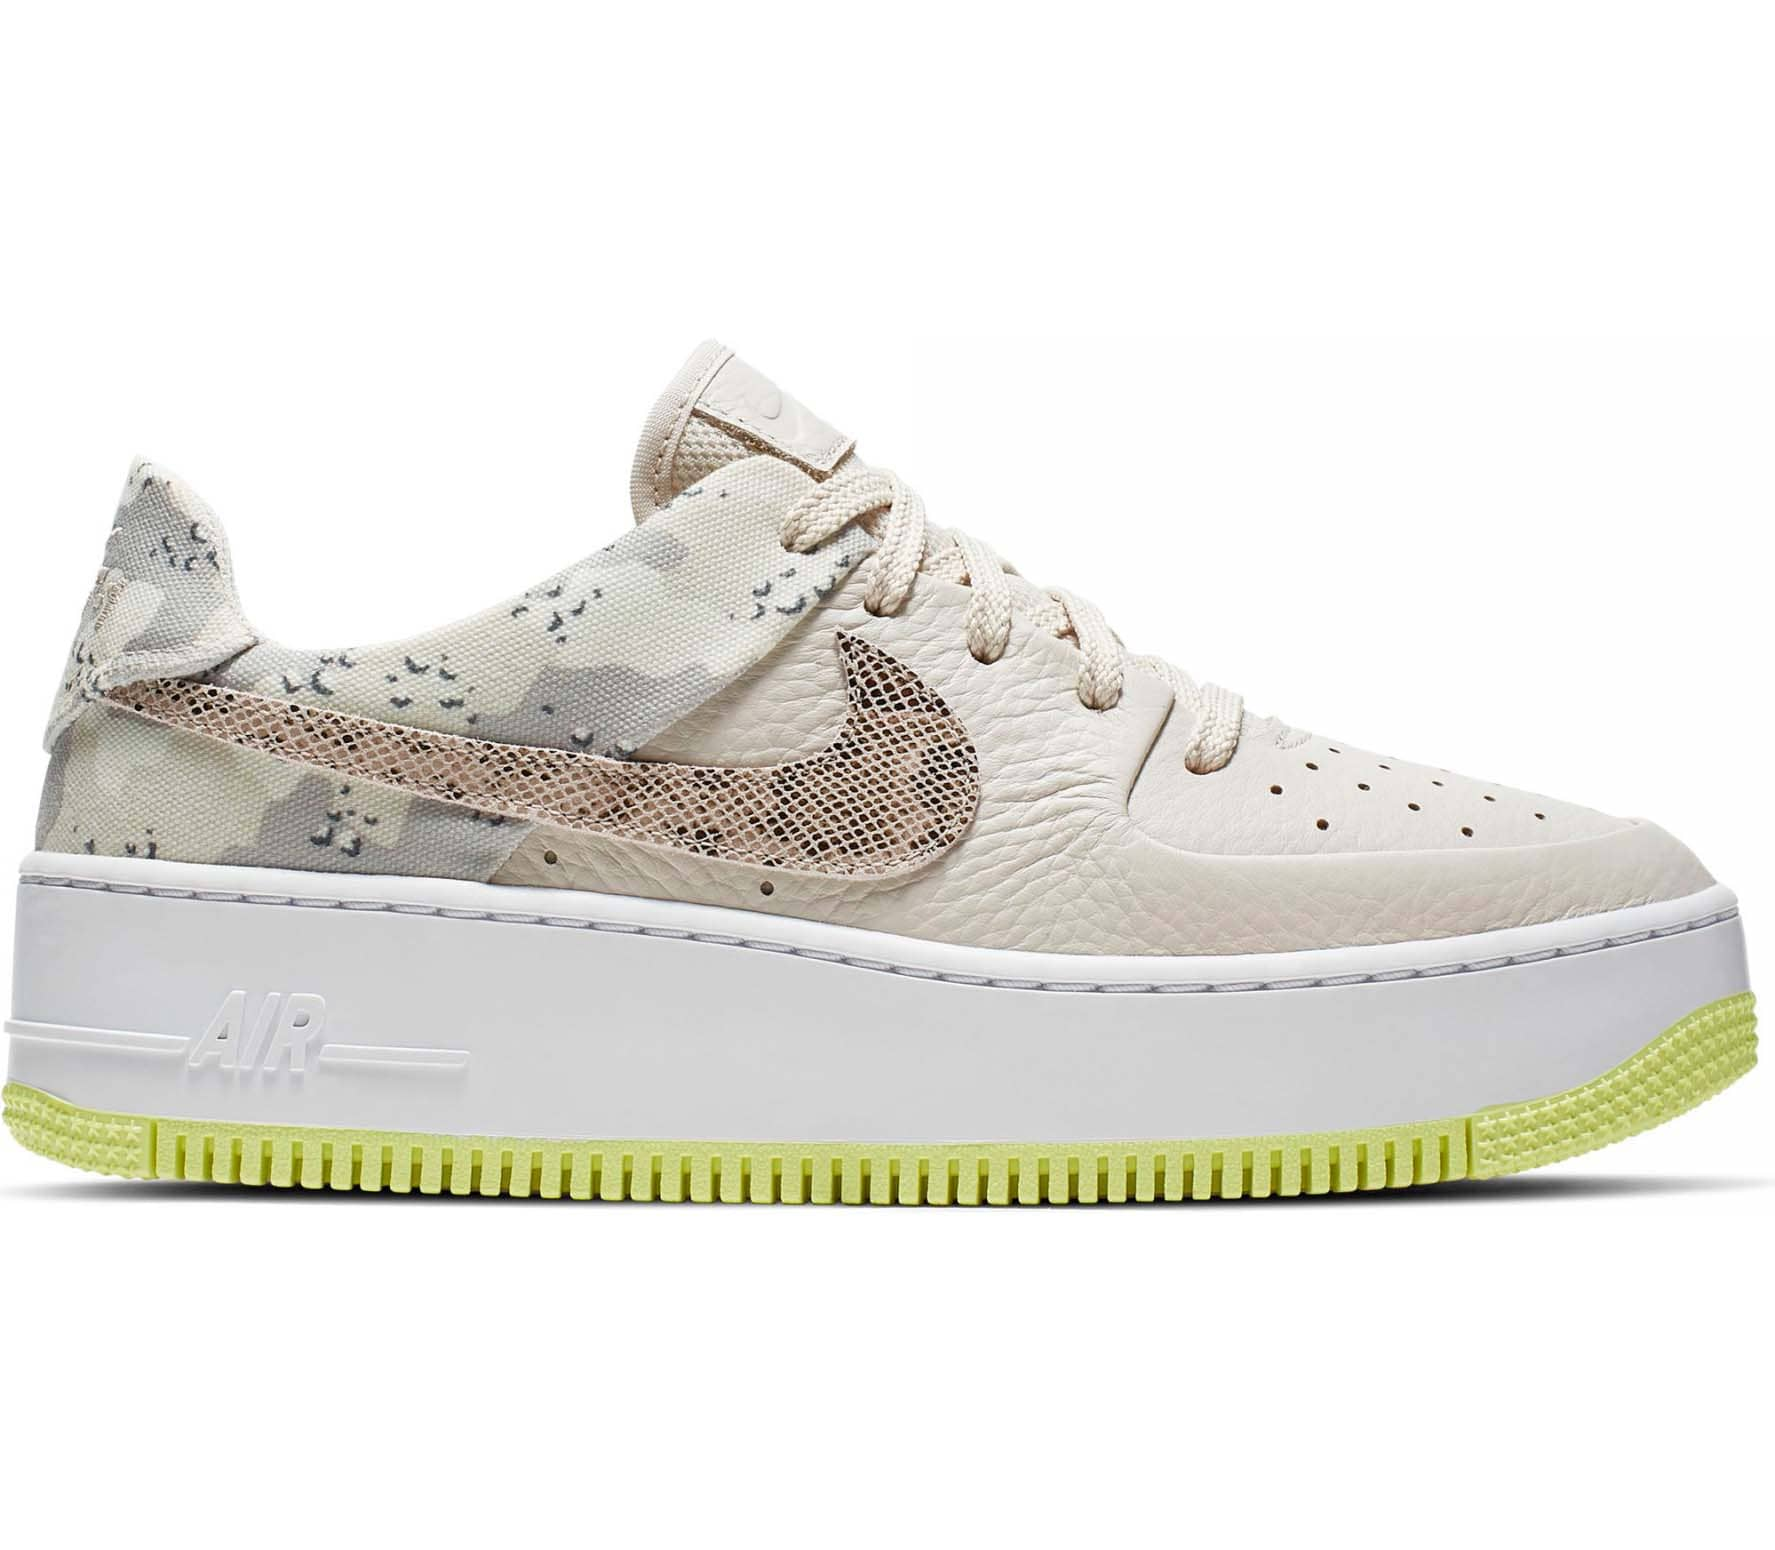 Nike Sportswear Air Force 1 Sage Low Premium Women Sneakers beige